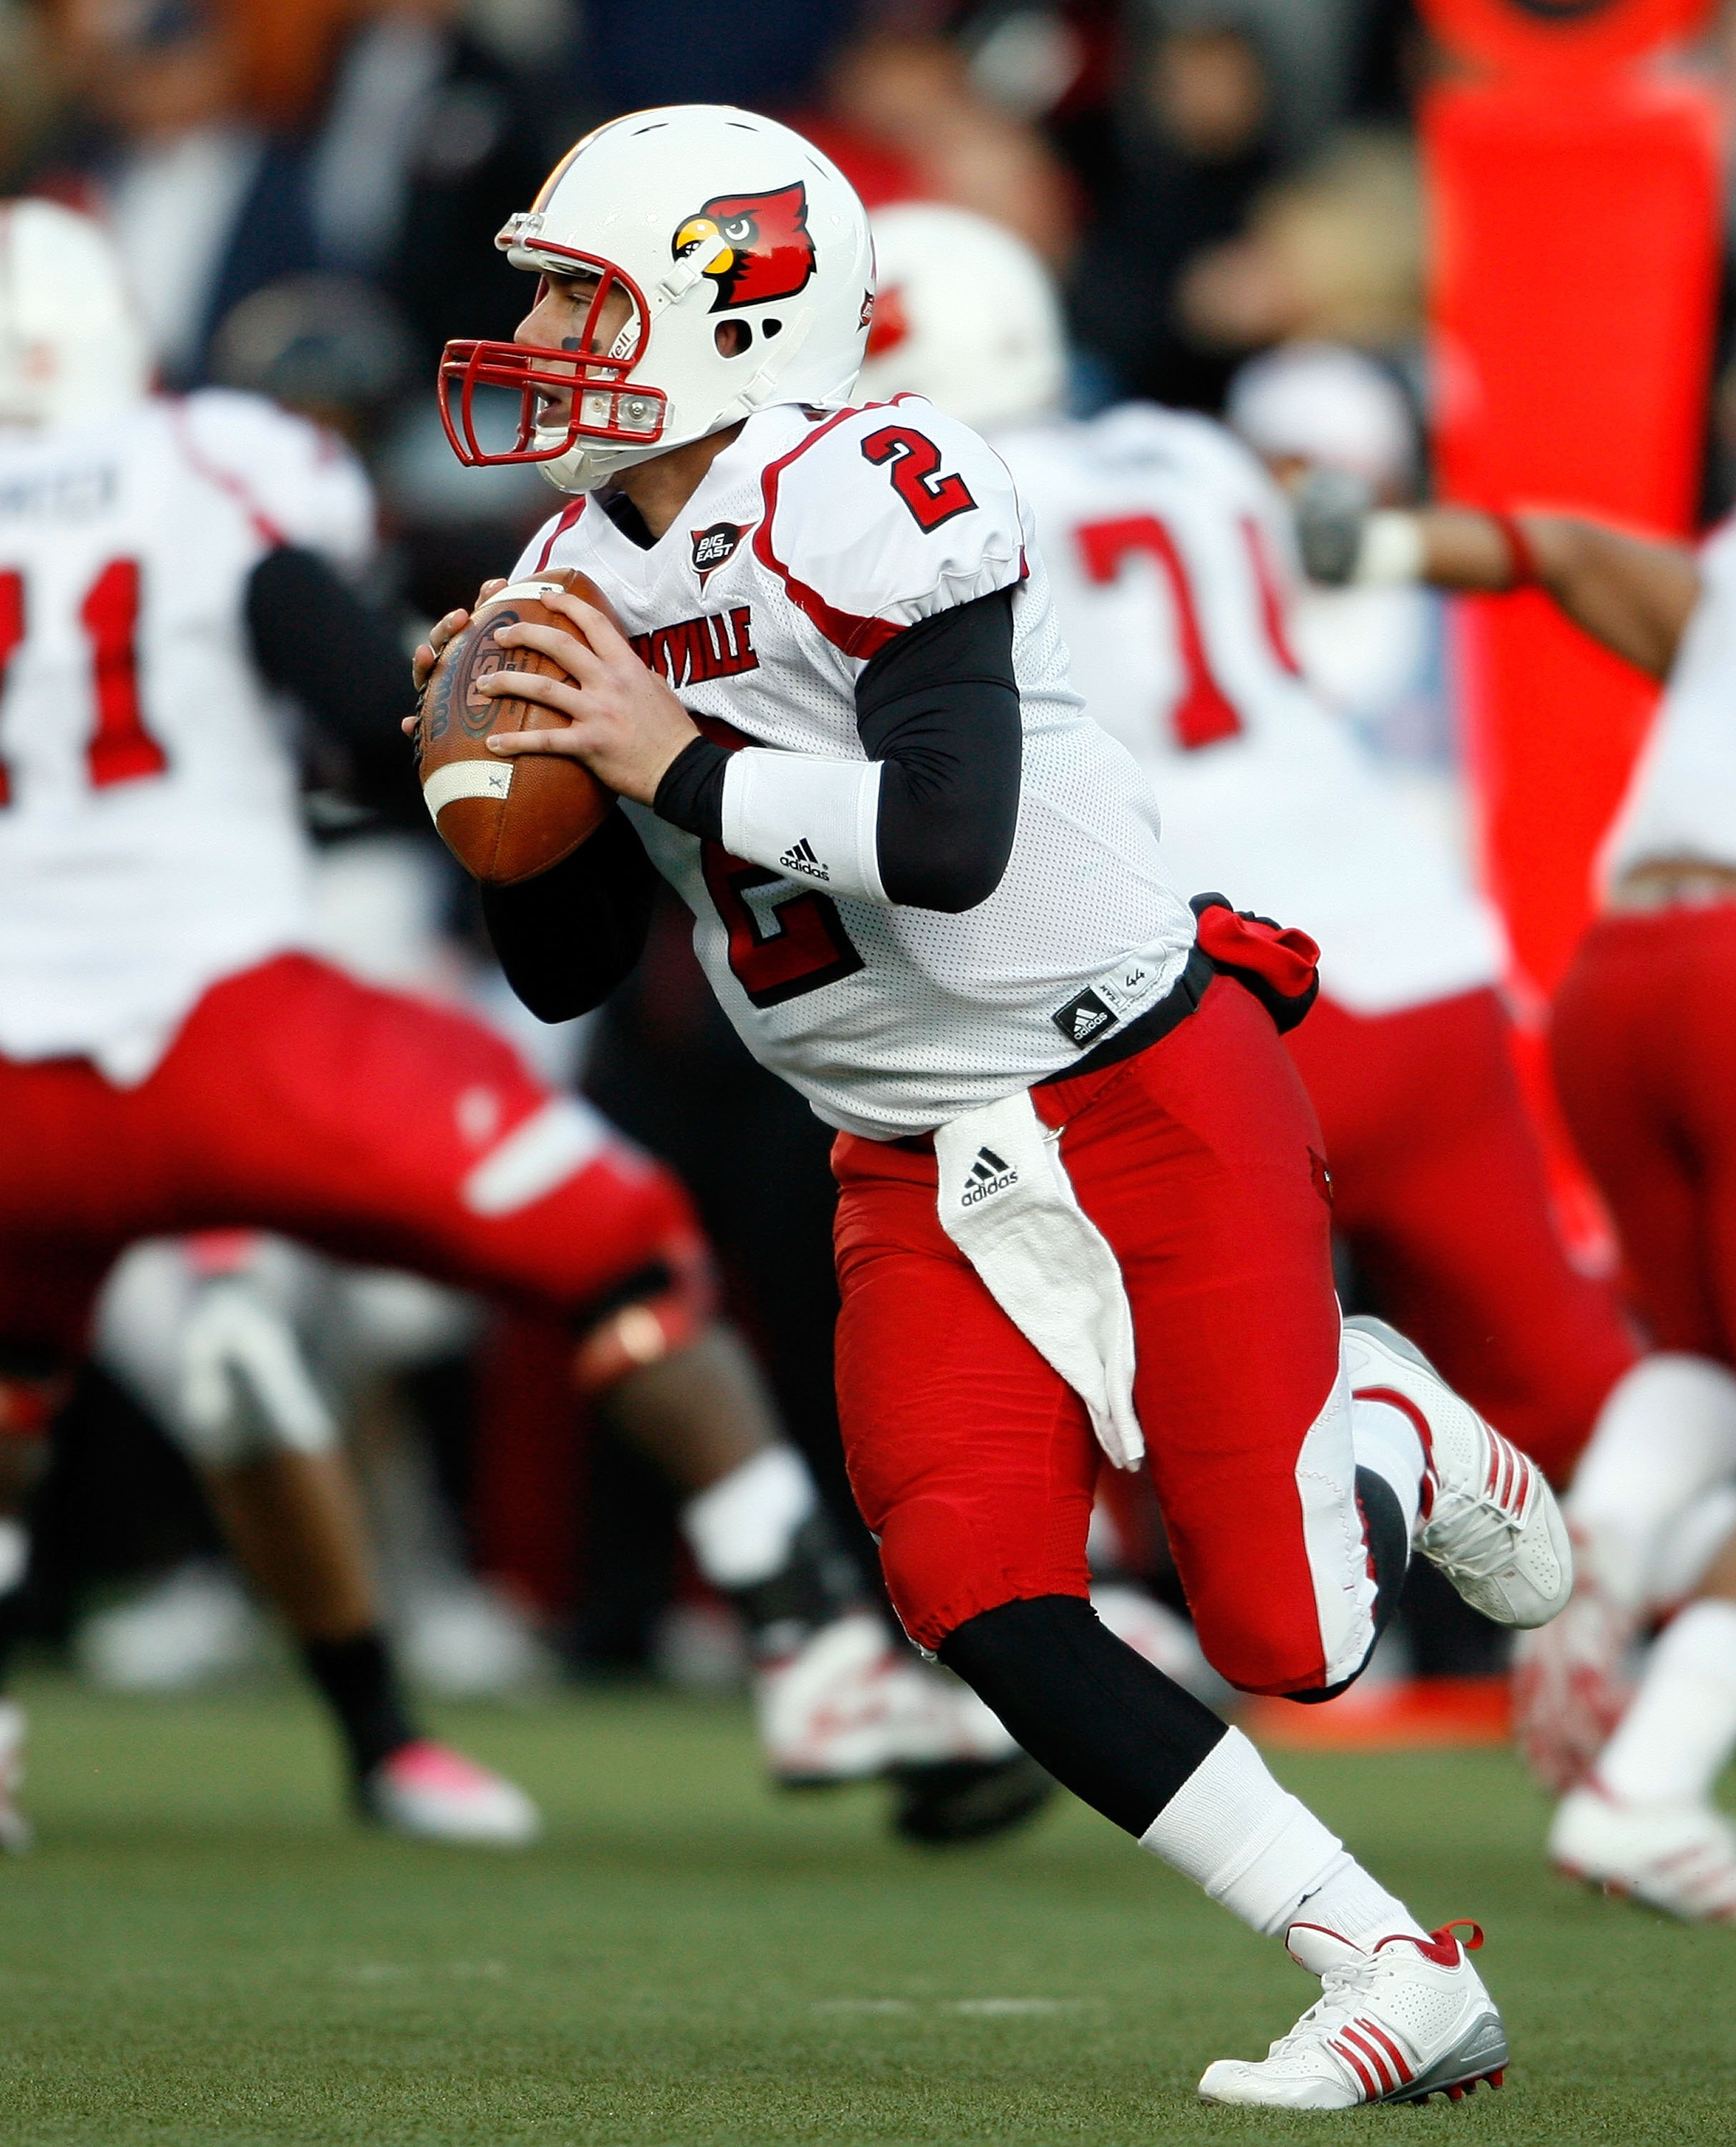 CINCINNATI - OCTOBER 24:  Will Stein #2 of the Louisville Cardinals runs with the ball during the Big East Conference game against the Cincinnati Bearcats at Nippert Stadium on October 24, 2009 in Cincinnati, Ohio.  (Photo by Andy Lyons/Getty Images)